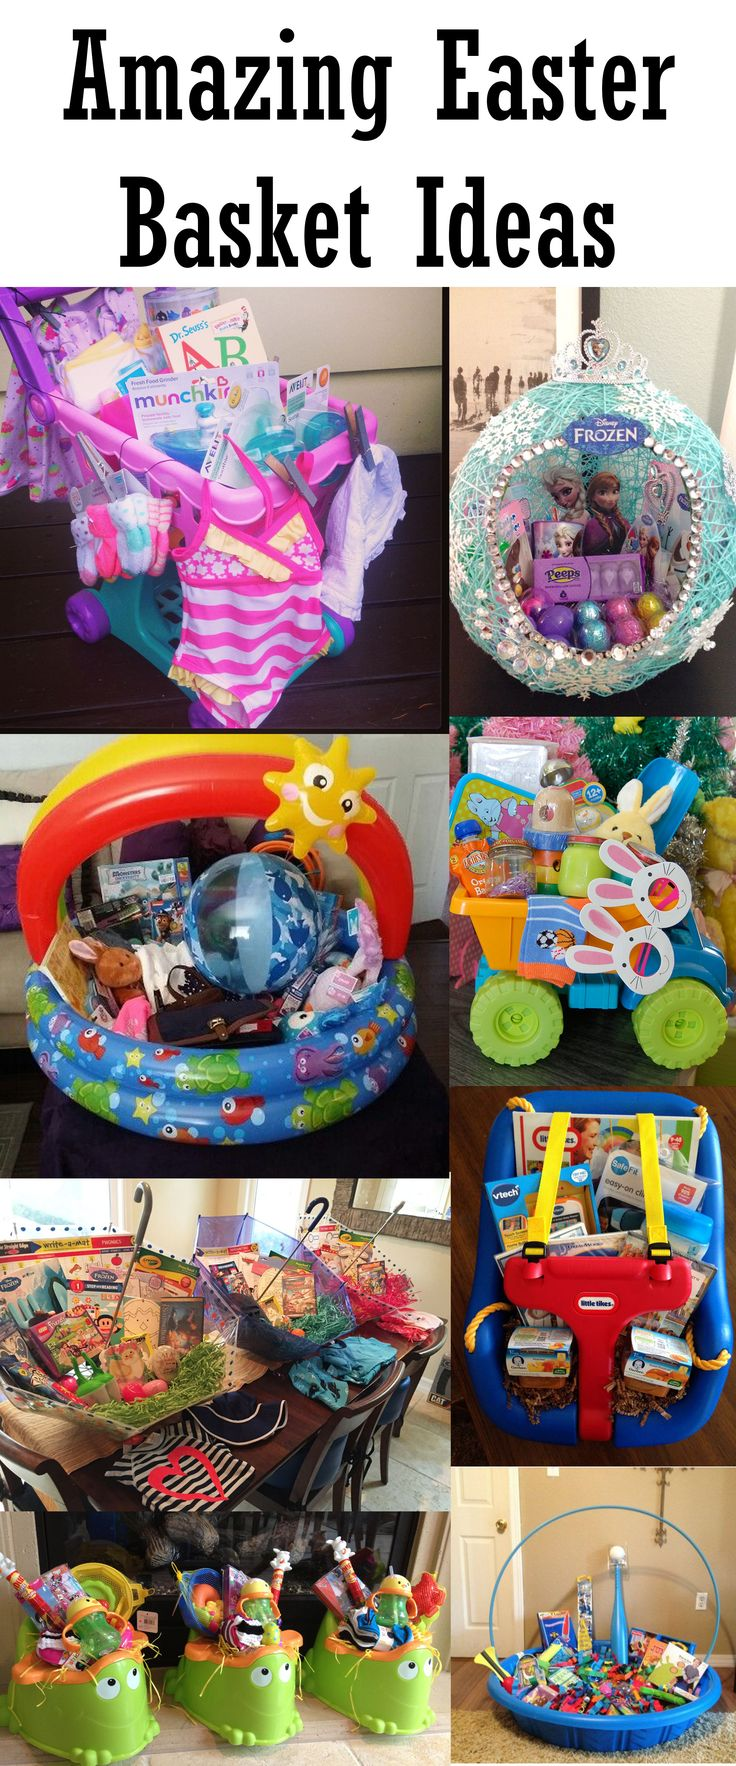 25 unique kids gift baskets ideas on pinterest movie basket amazing easter basket ideas 1 negle Gallery